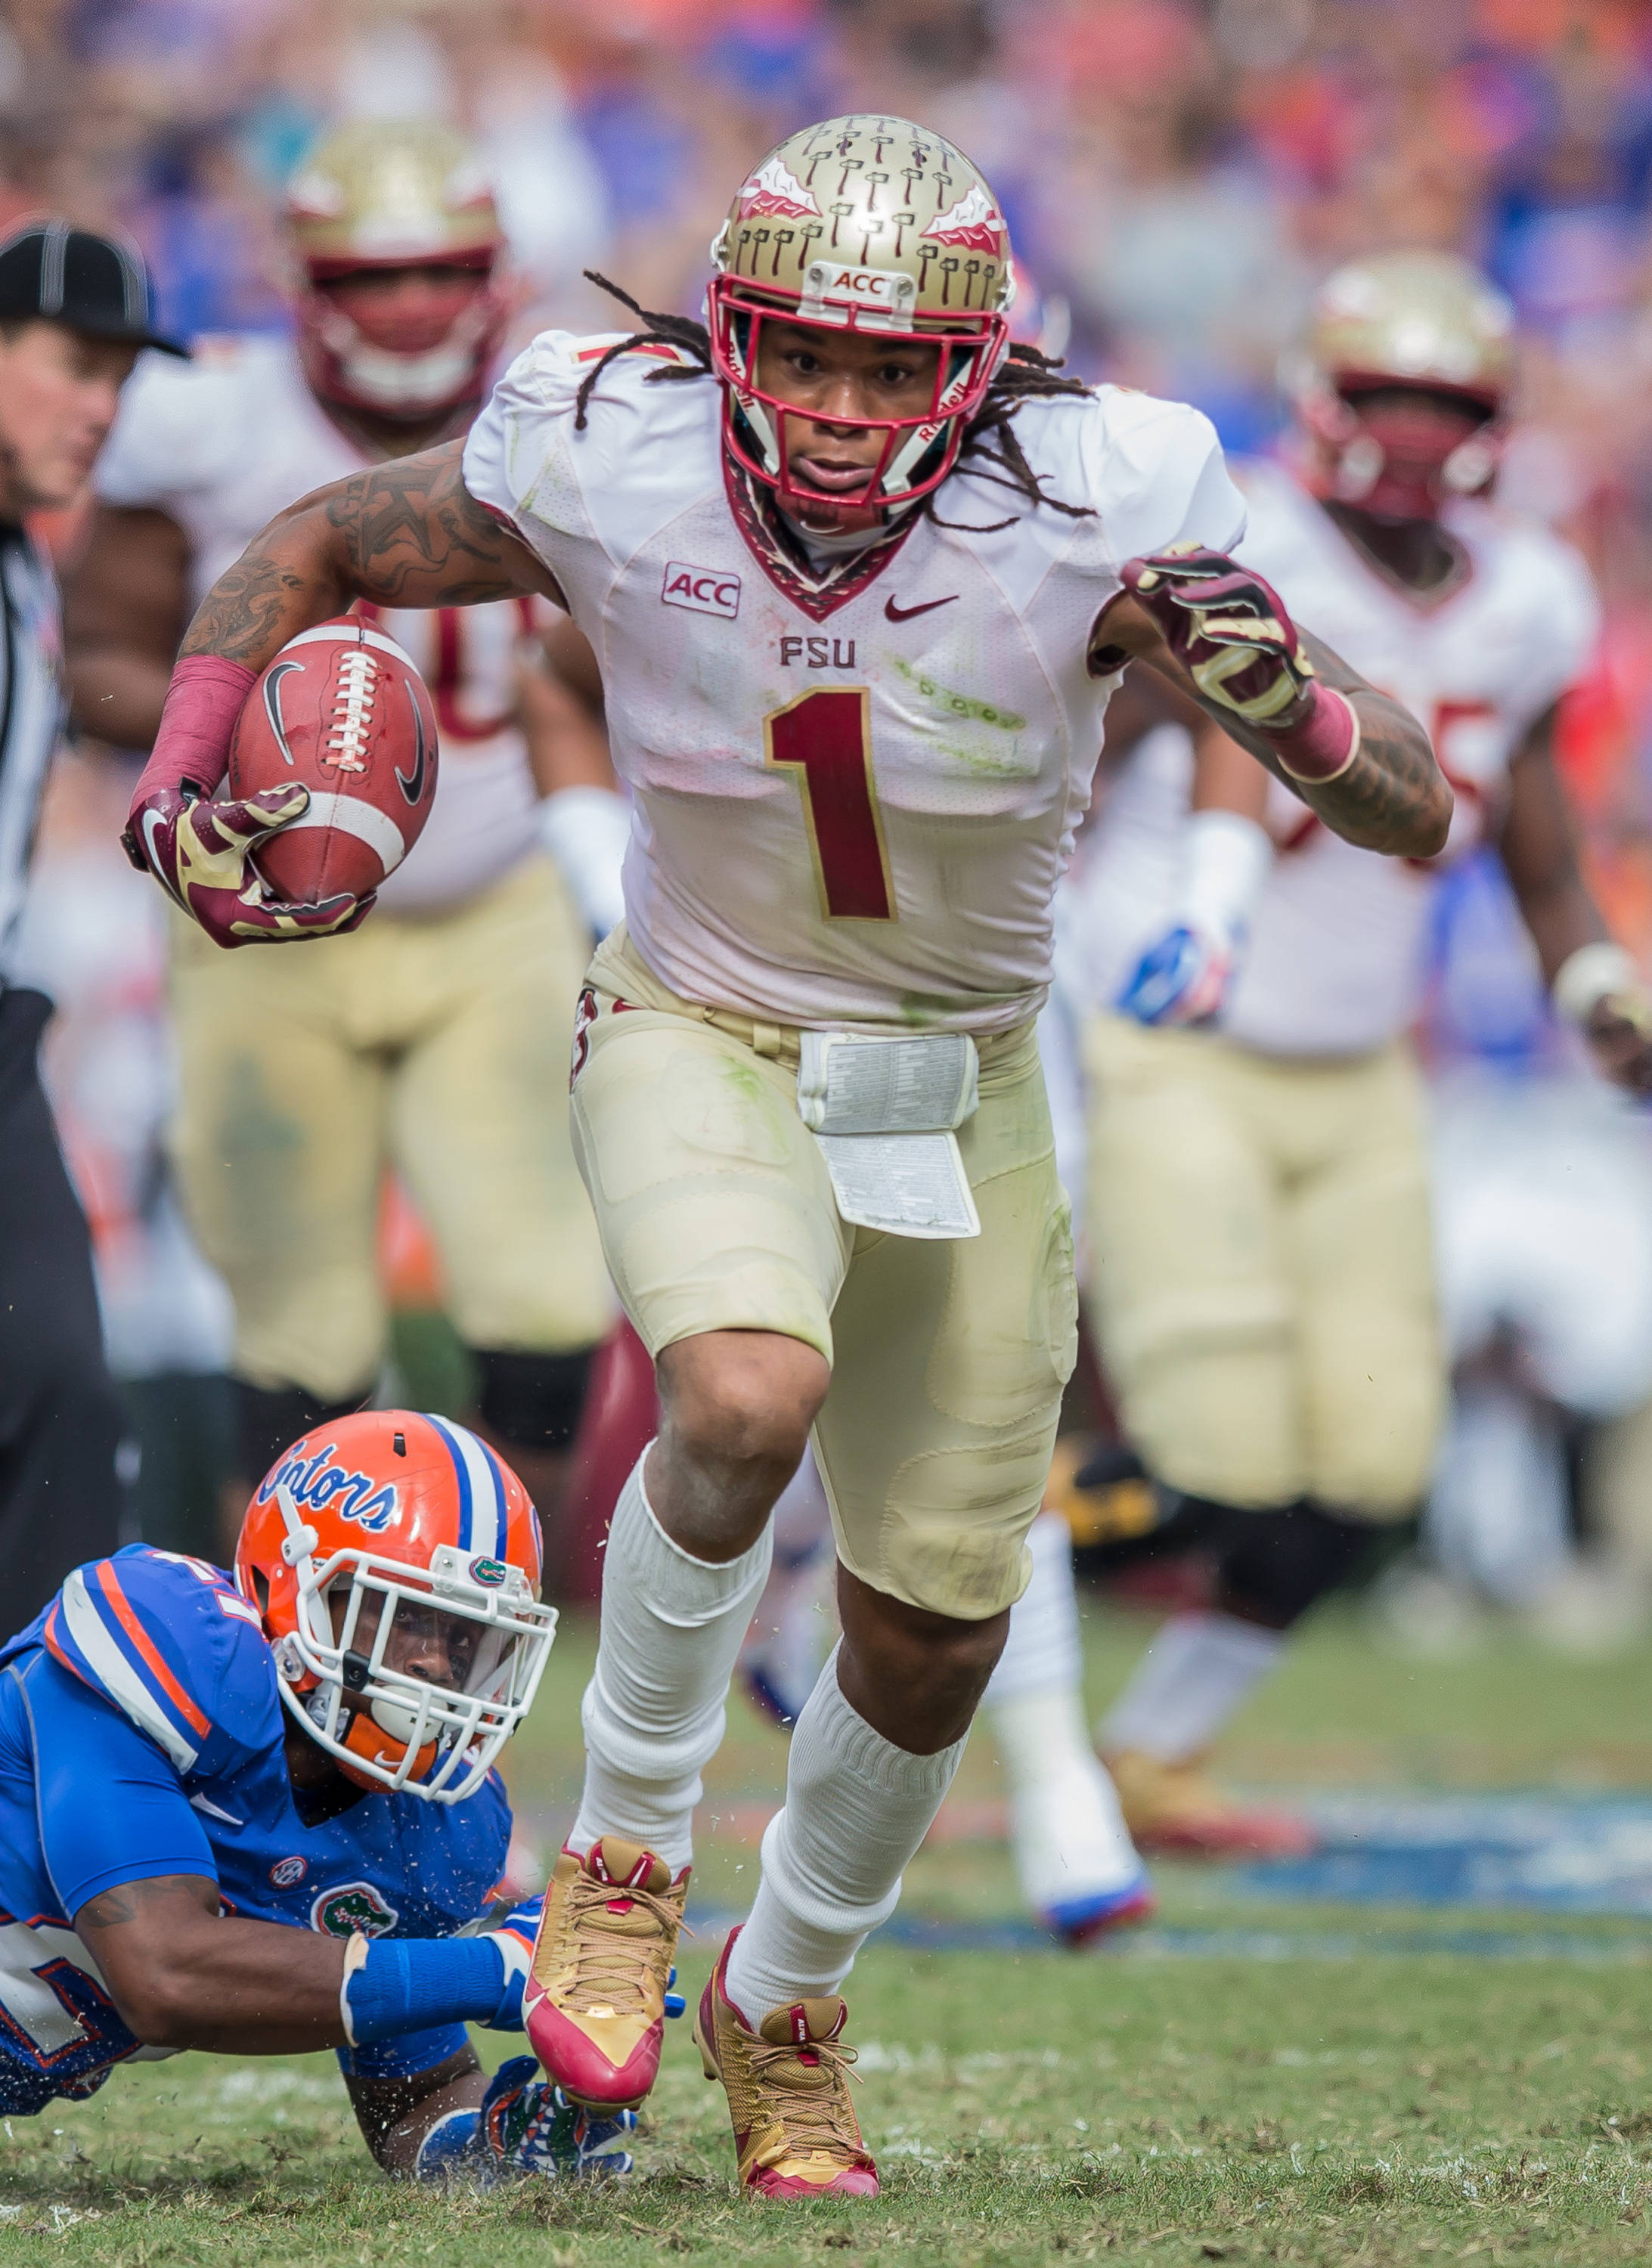 Kelvin Benjamin (1) refused to be tackled in scoring the Noles 1st TD.